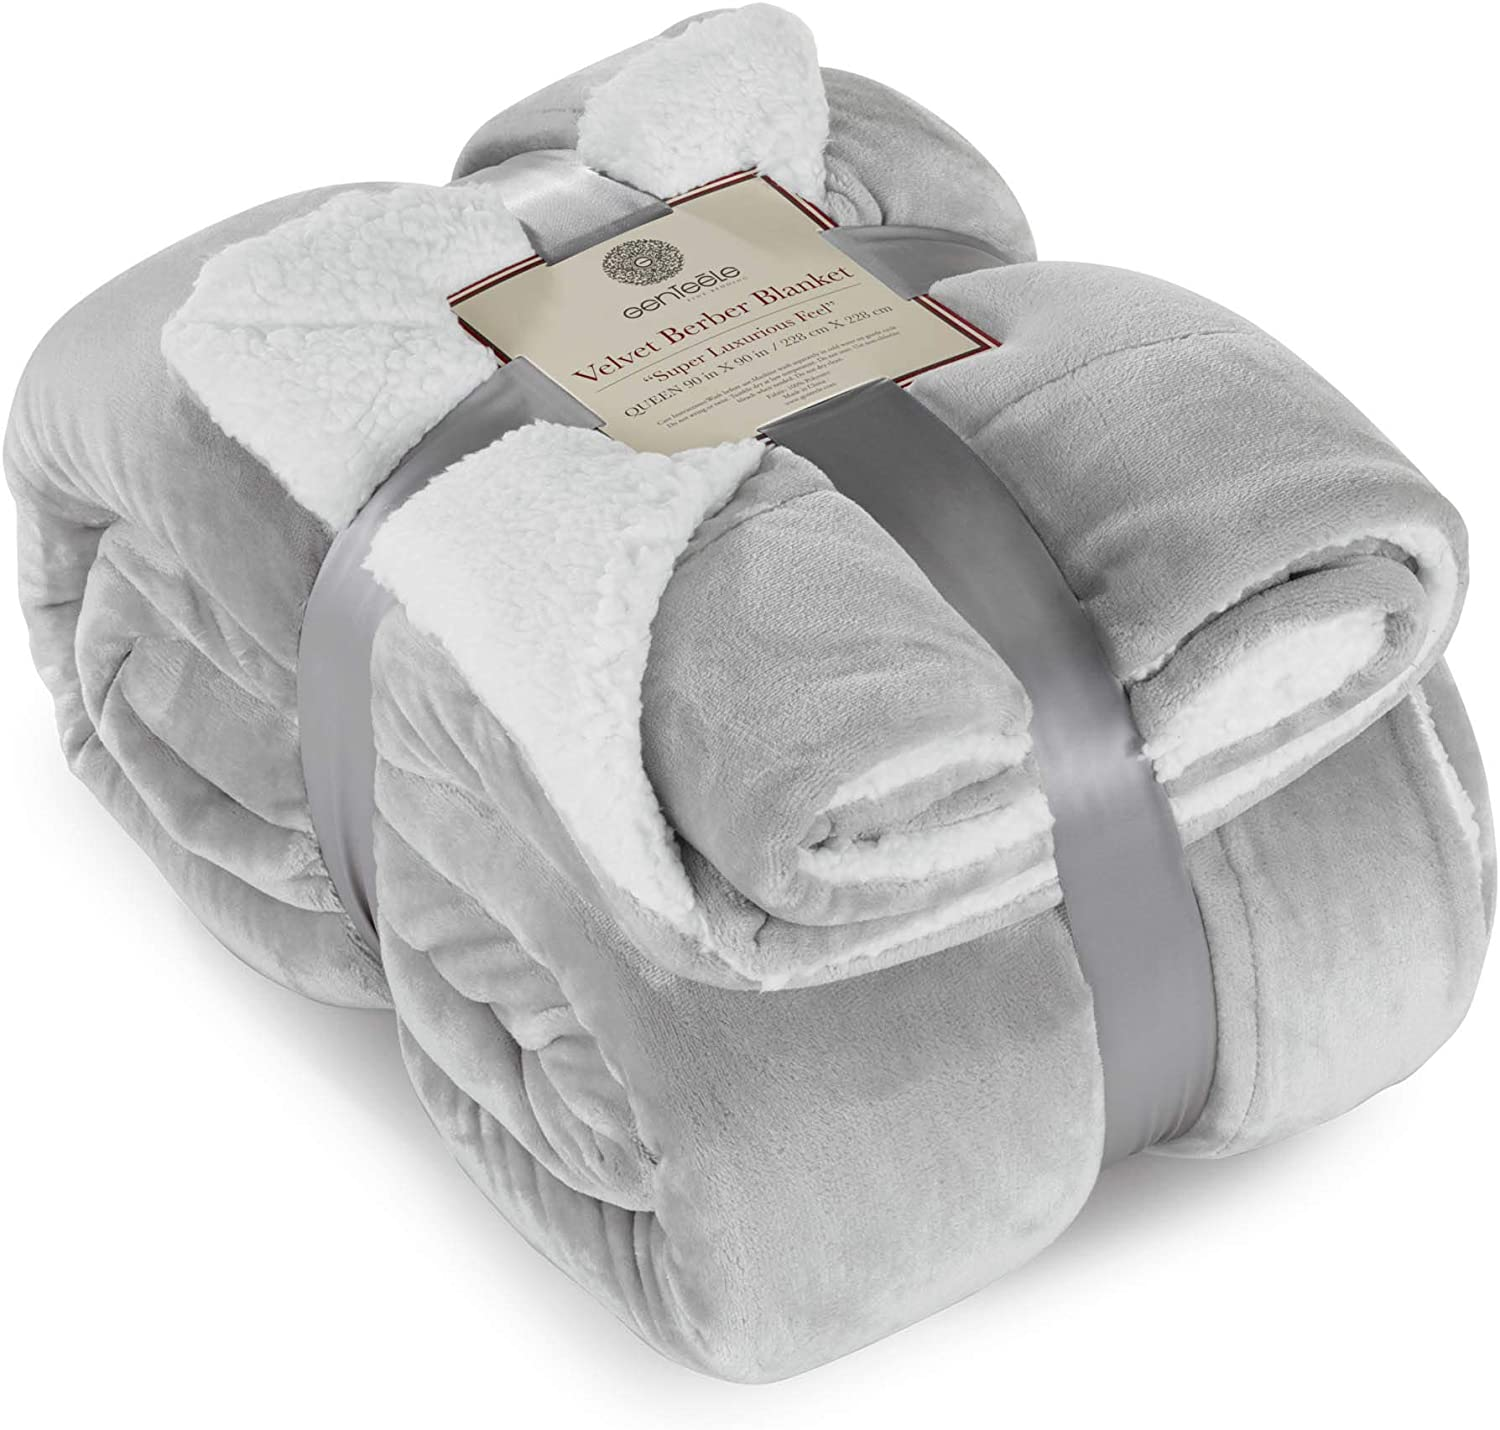 Genteele Sherpa Throw Blanket Super Soft Reversible Ultra Luxurious Plush Blanket (40 inches x 50 inches, Silver)